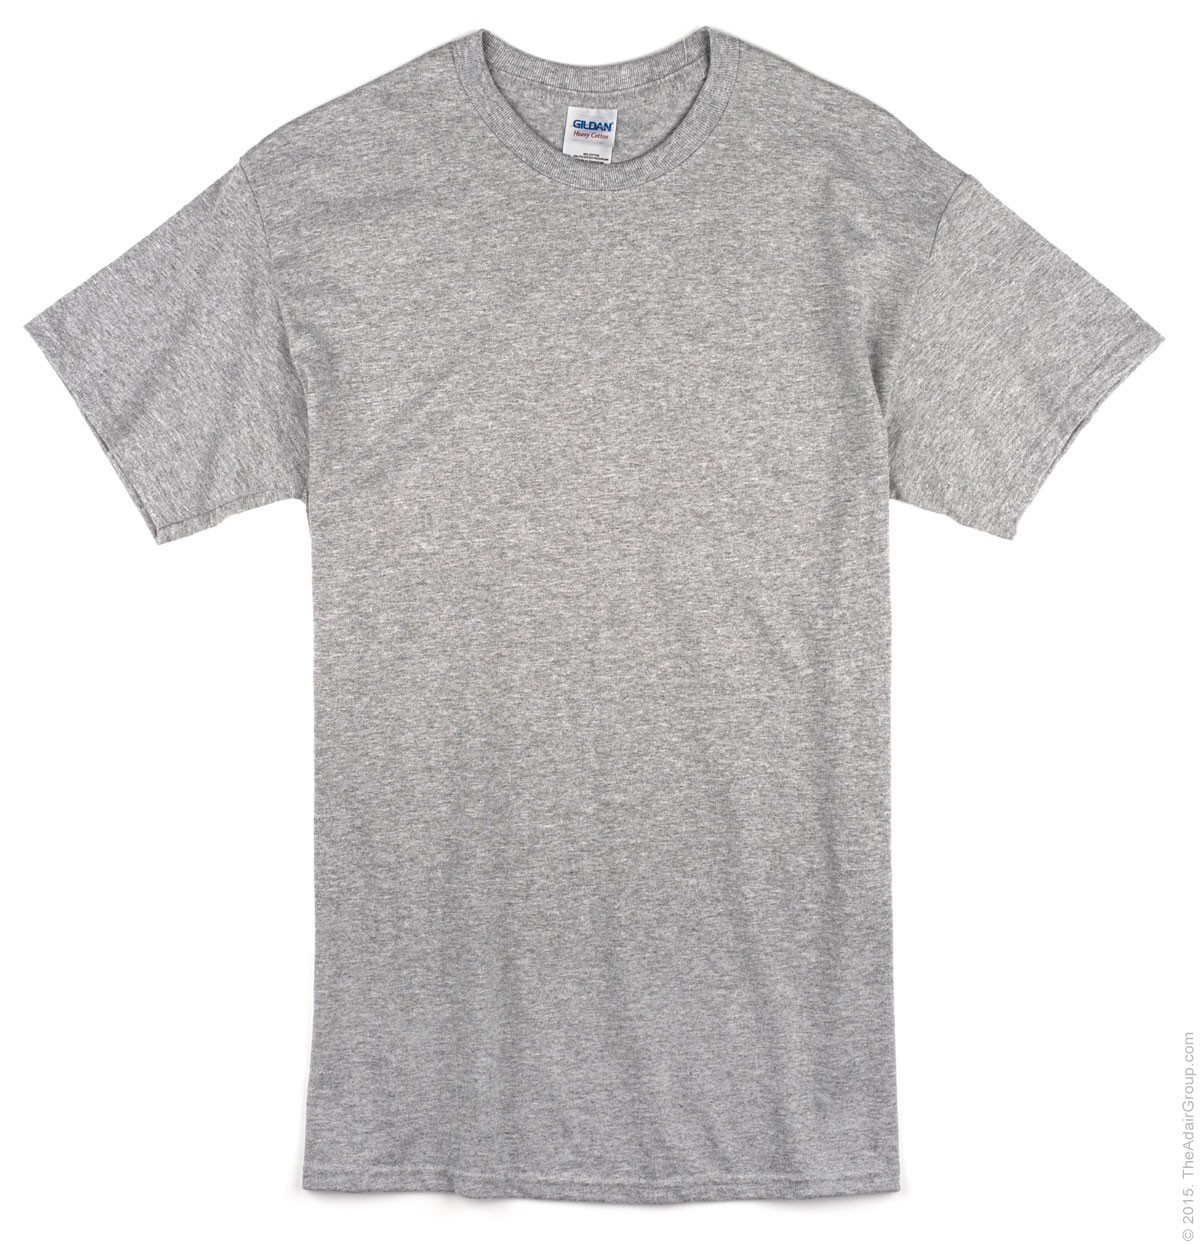 Blank T-Shirts for Adults - Cheapest Prices & Quality Selection